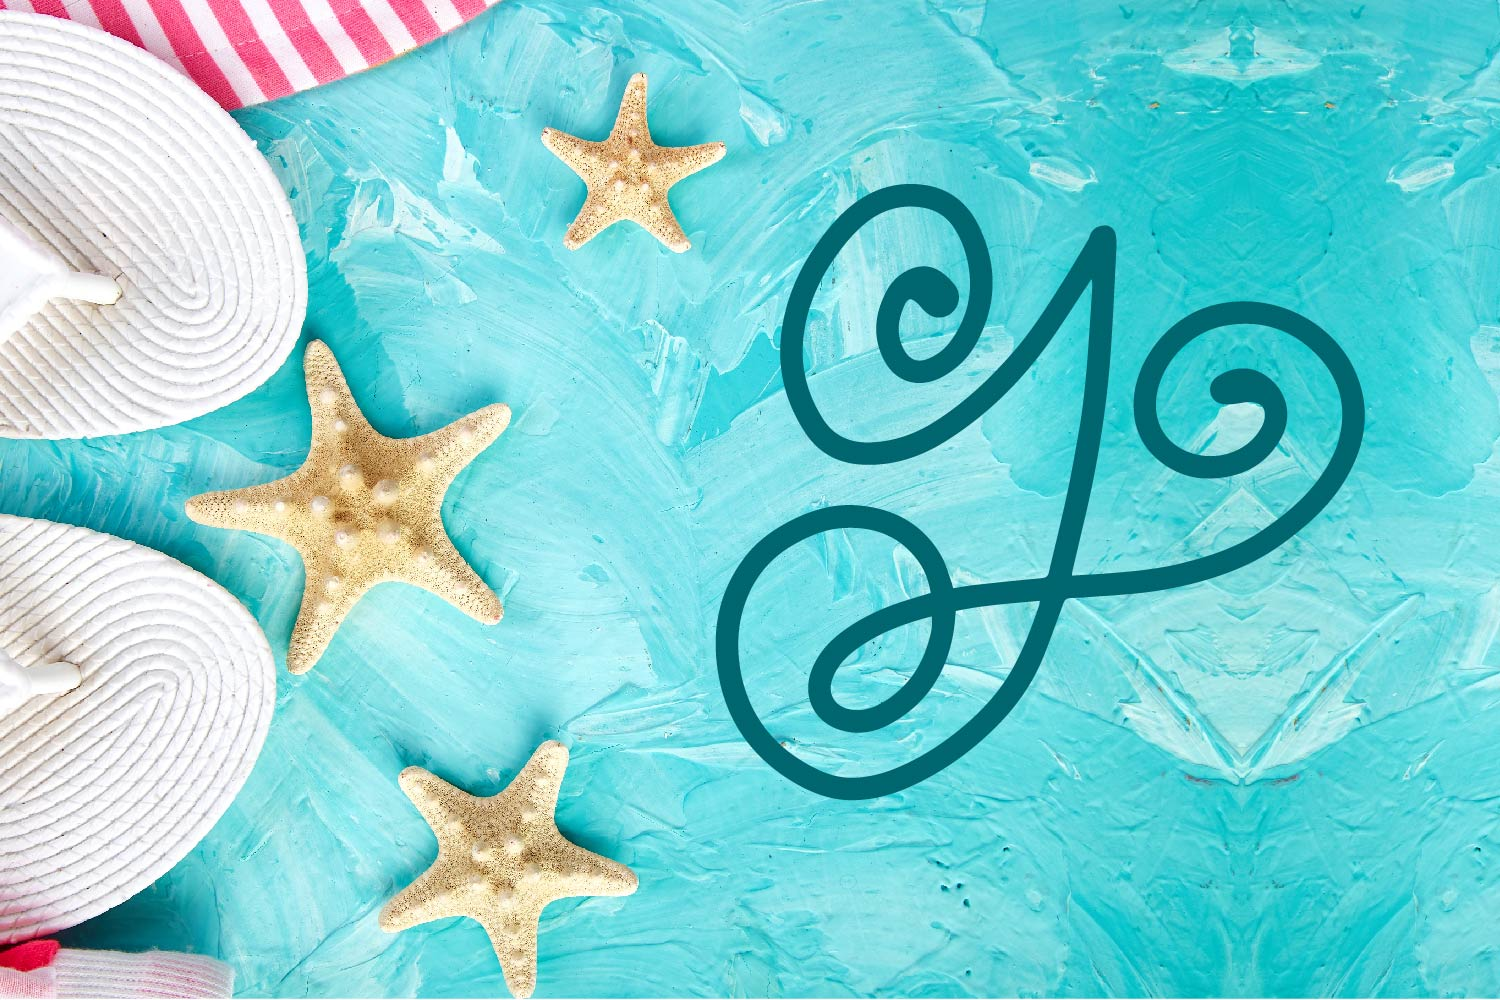 Swirly Monogram - With Swooshy Monoline Extras example image 4